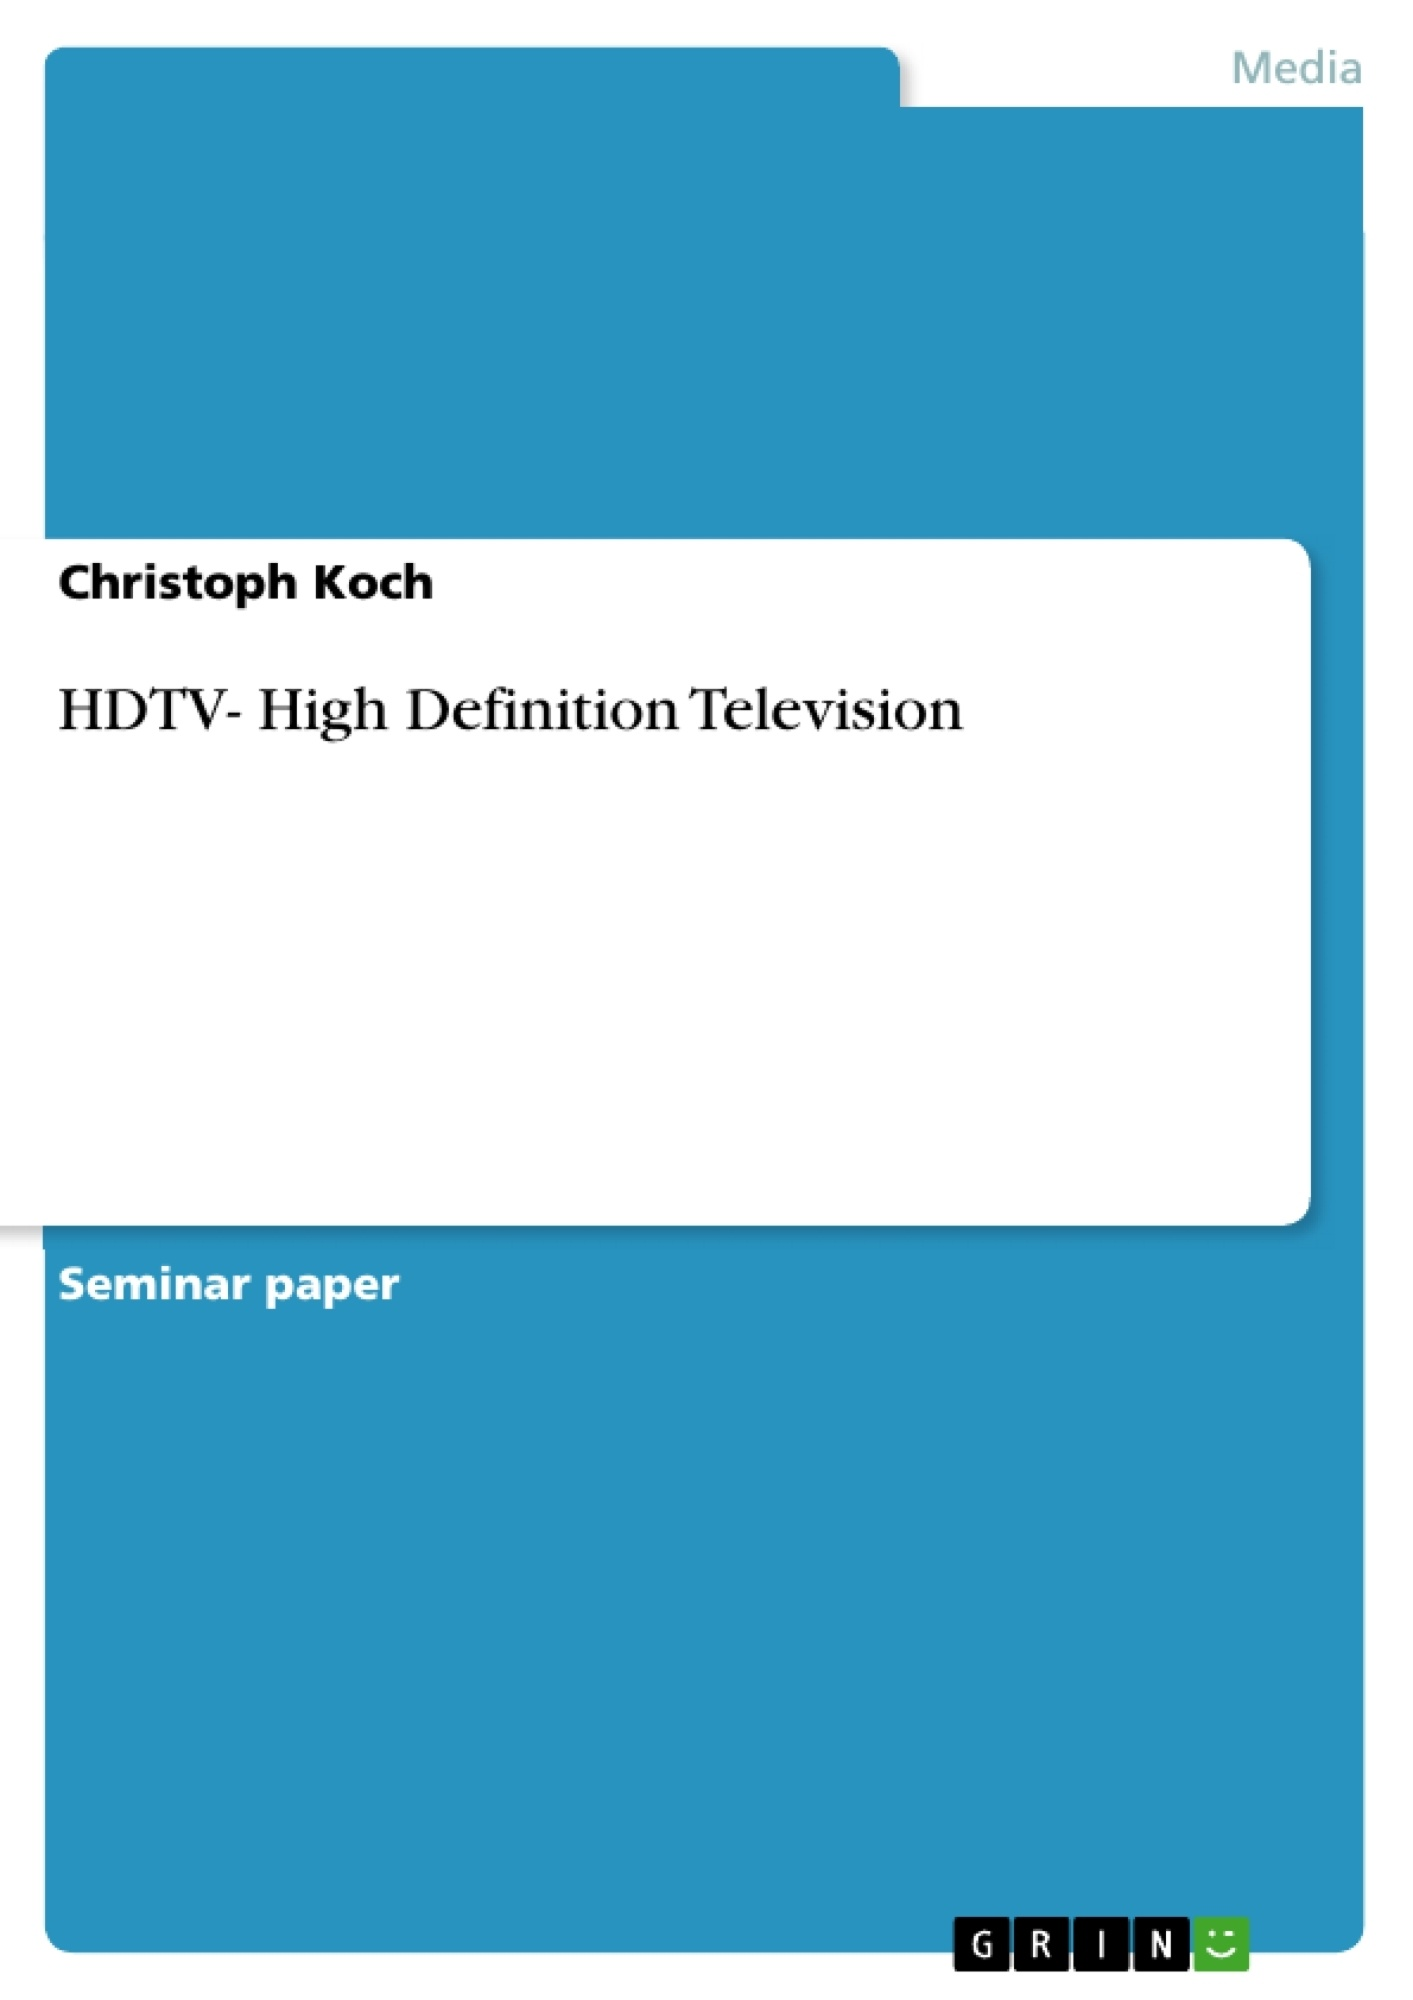 Title: HDTV- High Definition Television